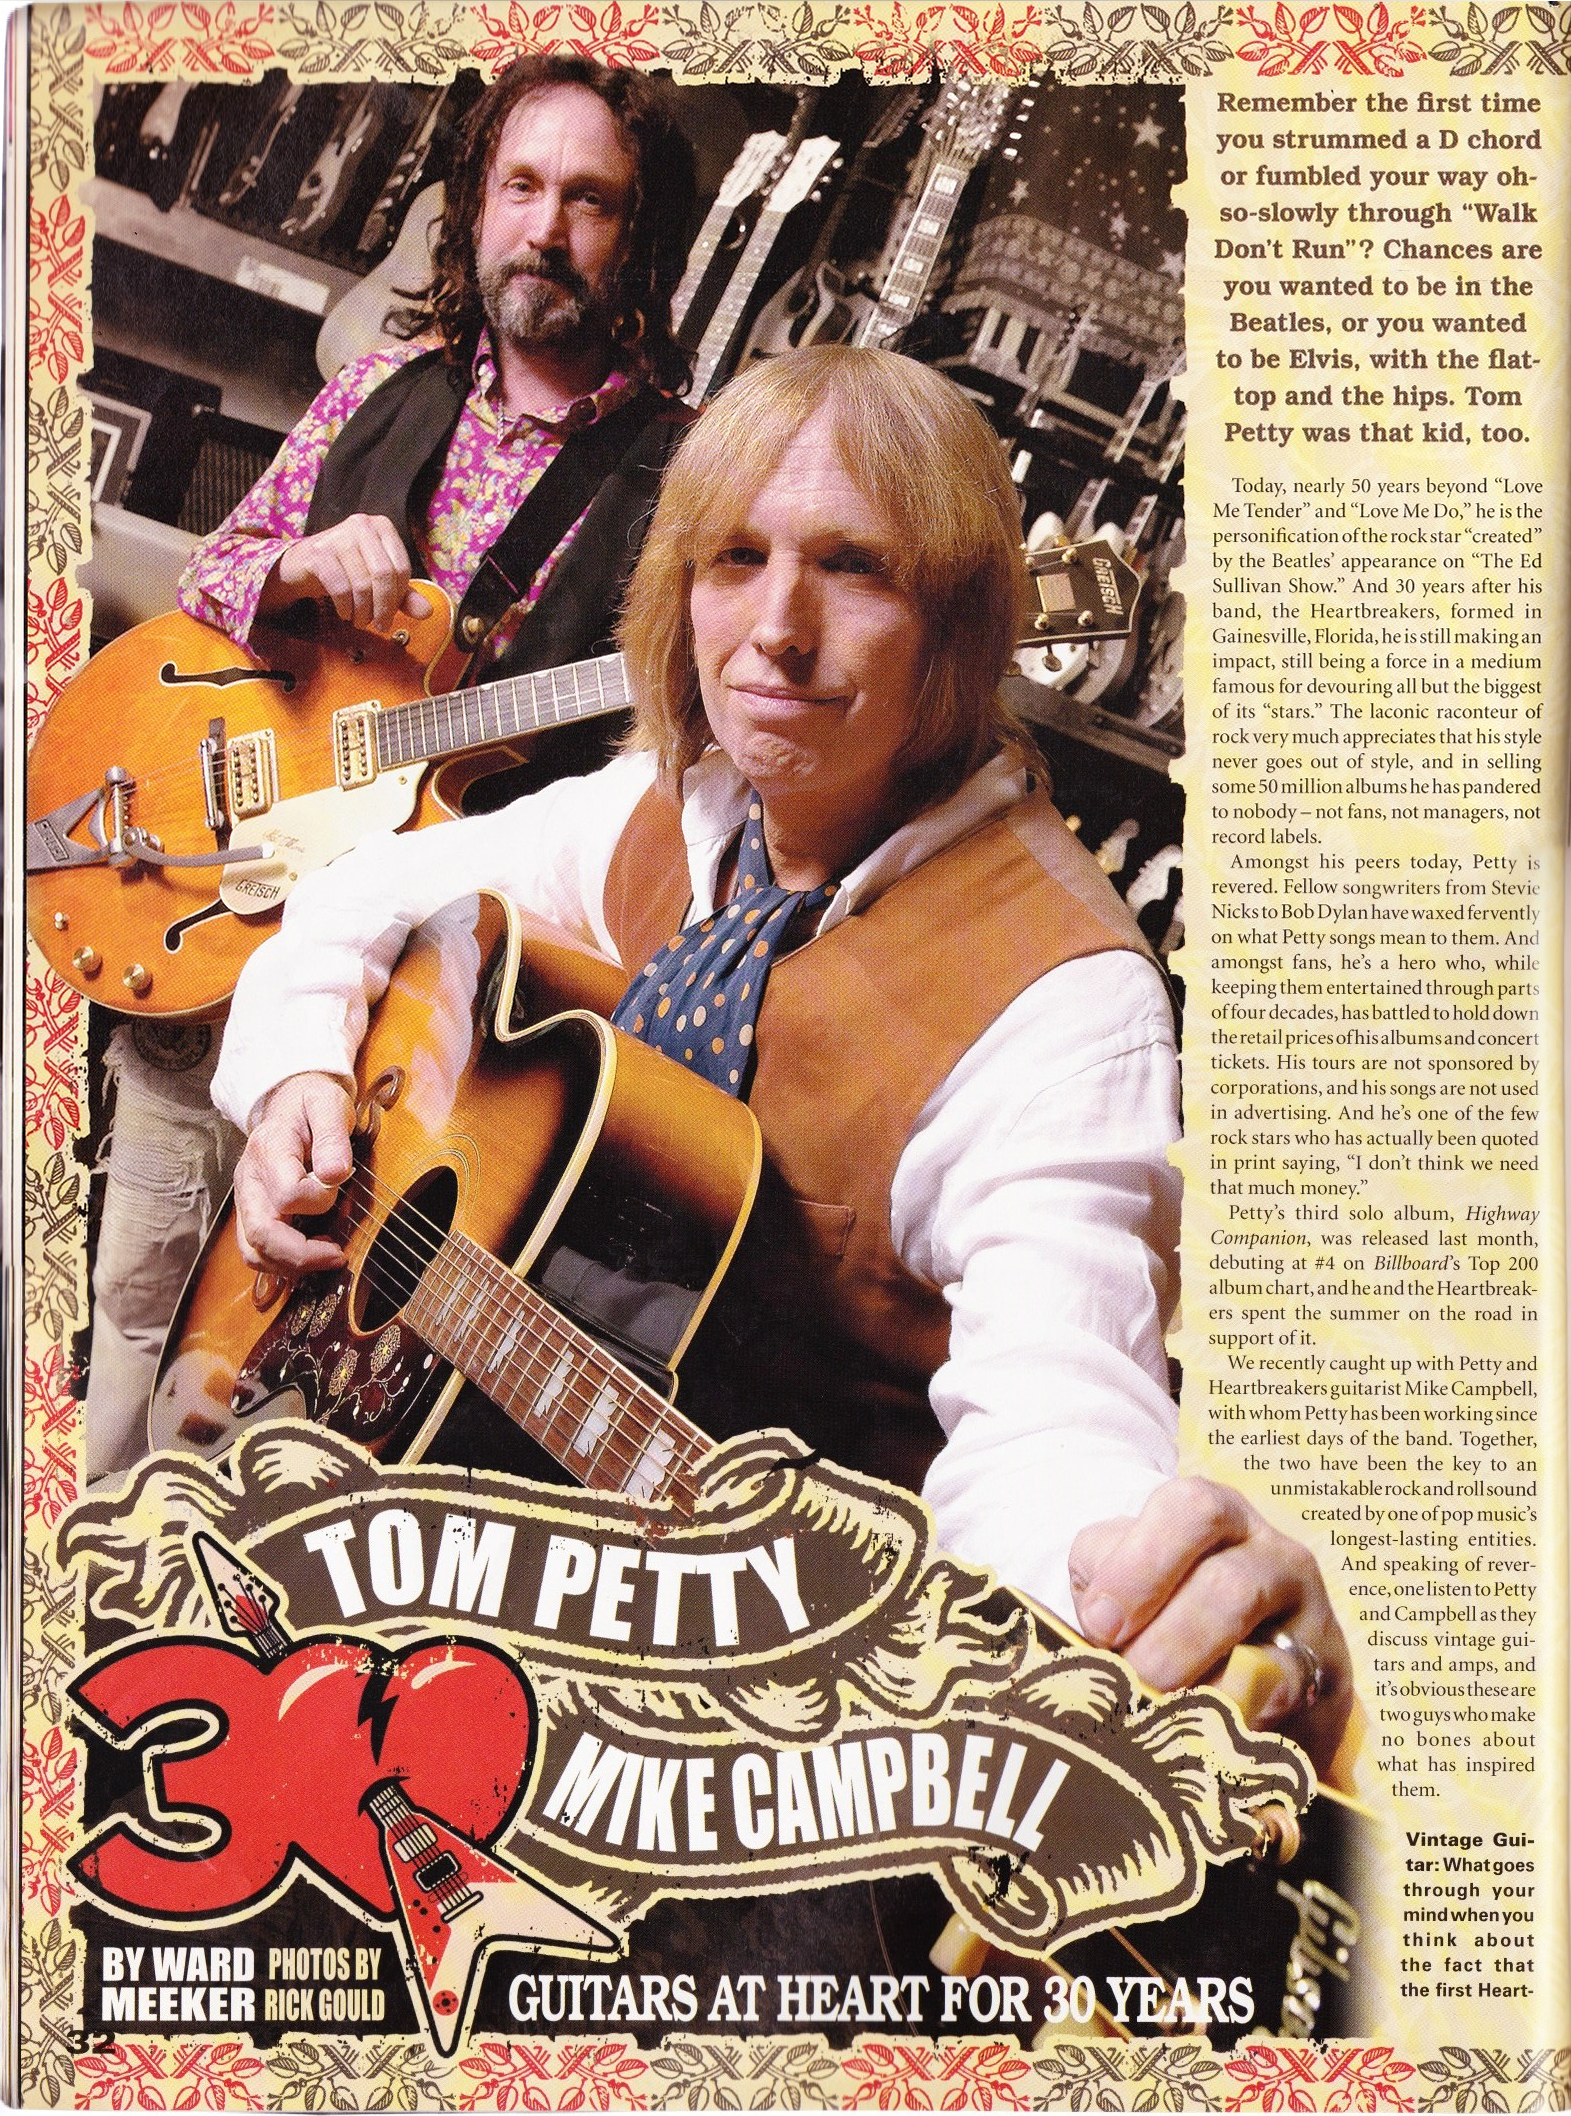 Vintage Guitar November 2006 The Petty Archives